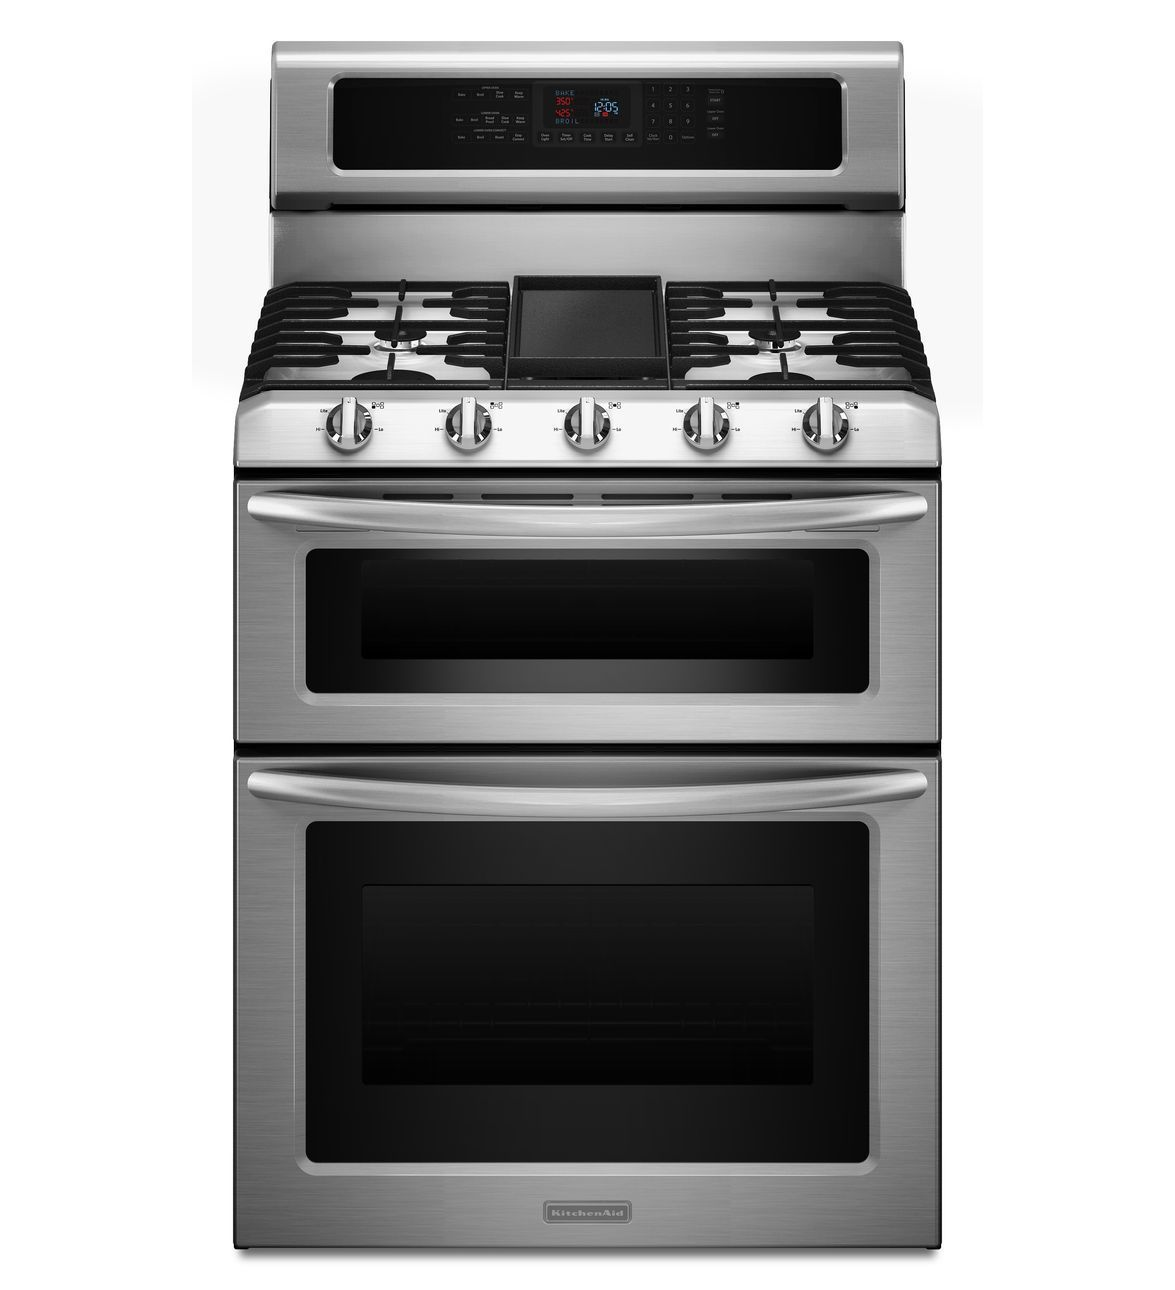 5 Burner Freestanding Double Oven Range With Even Heat Convection My Mom Has This Oven And Loves It And I Cant Wait To Go Back To A Gas Stove Top